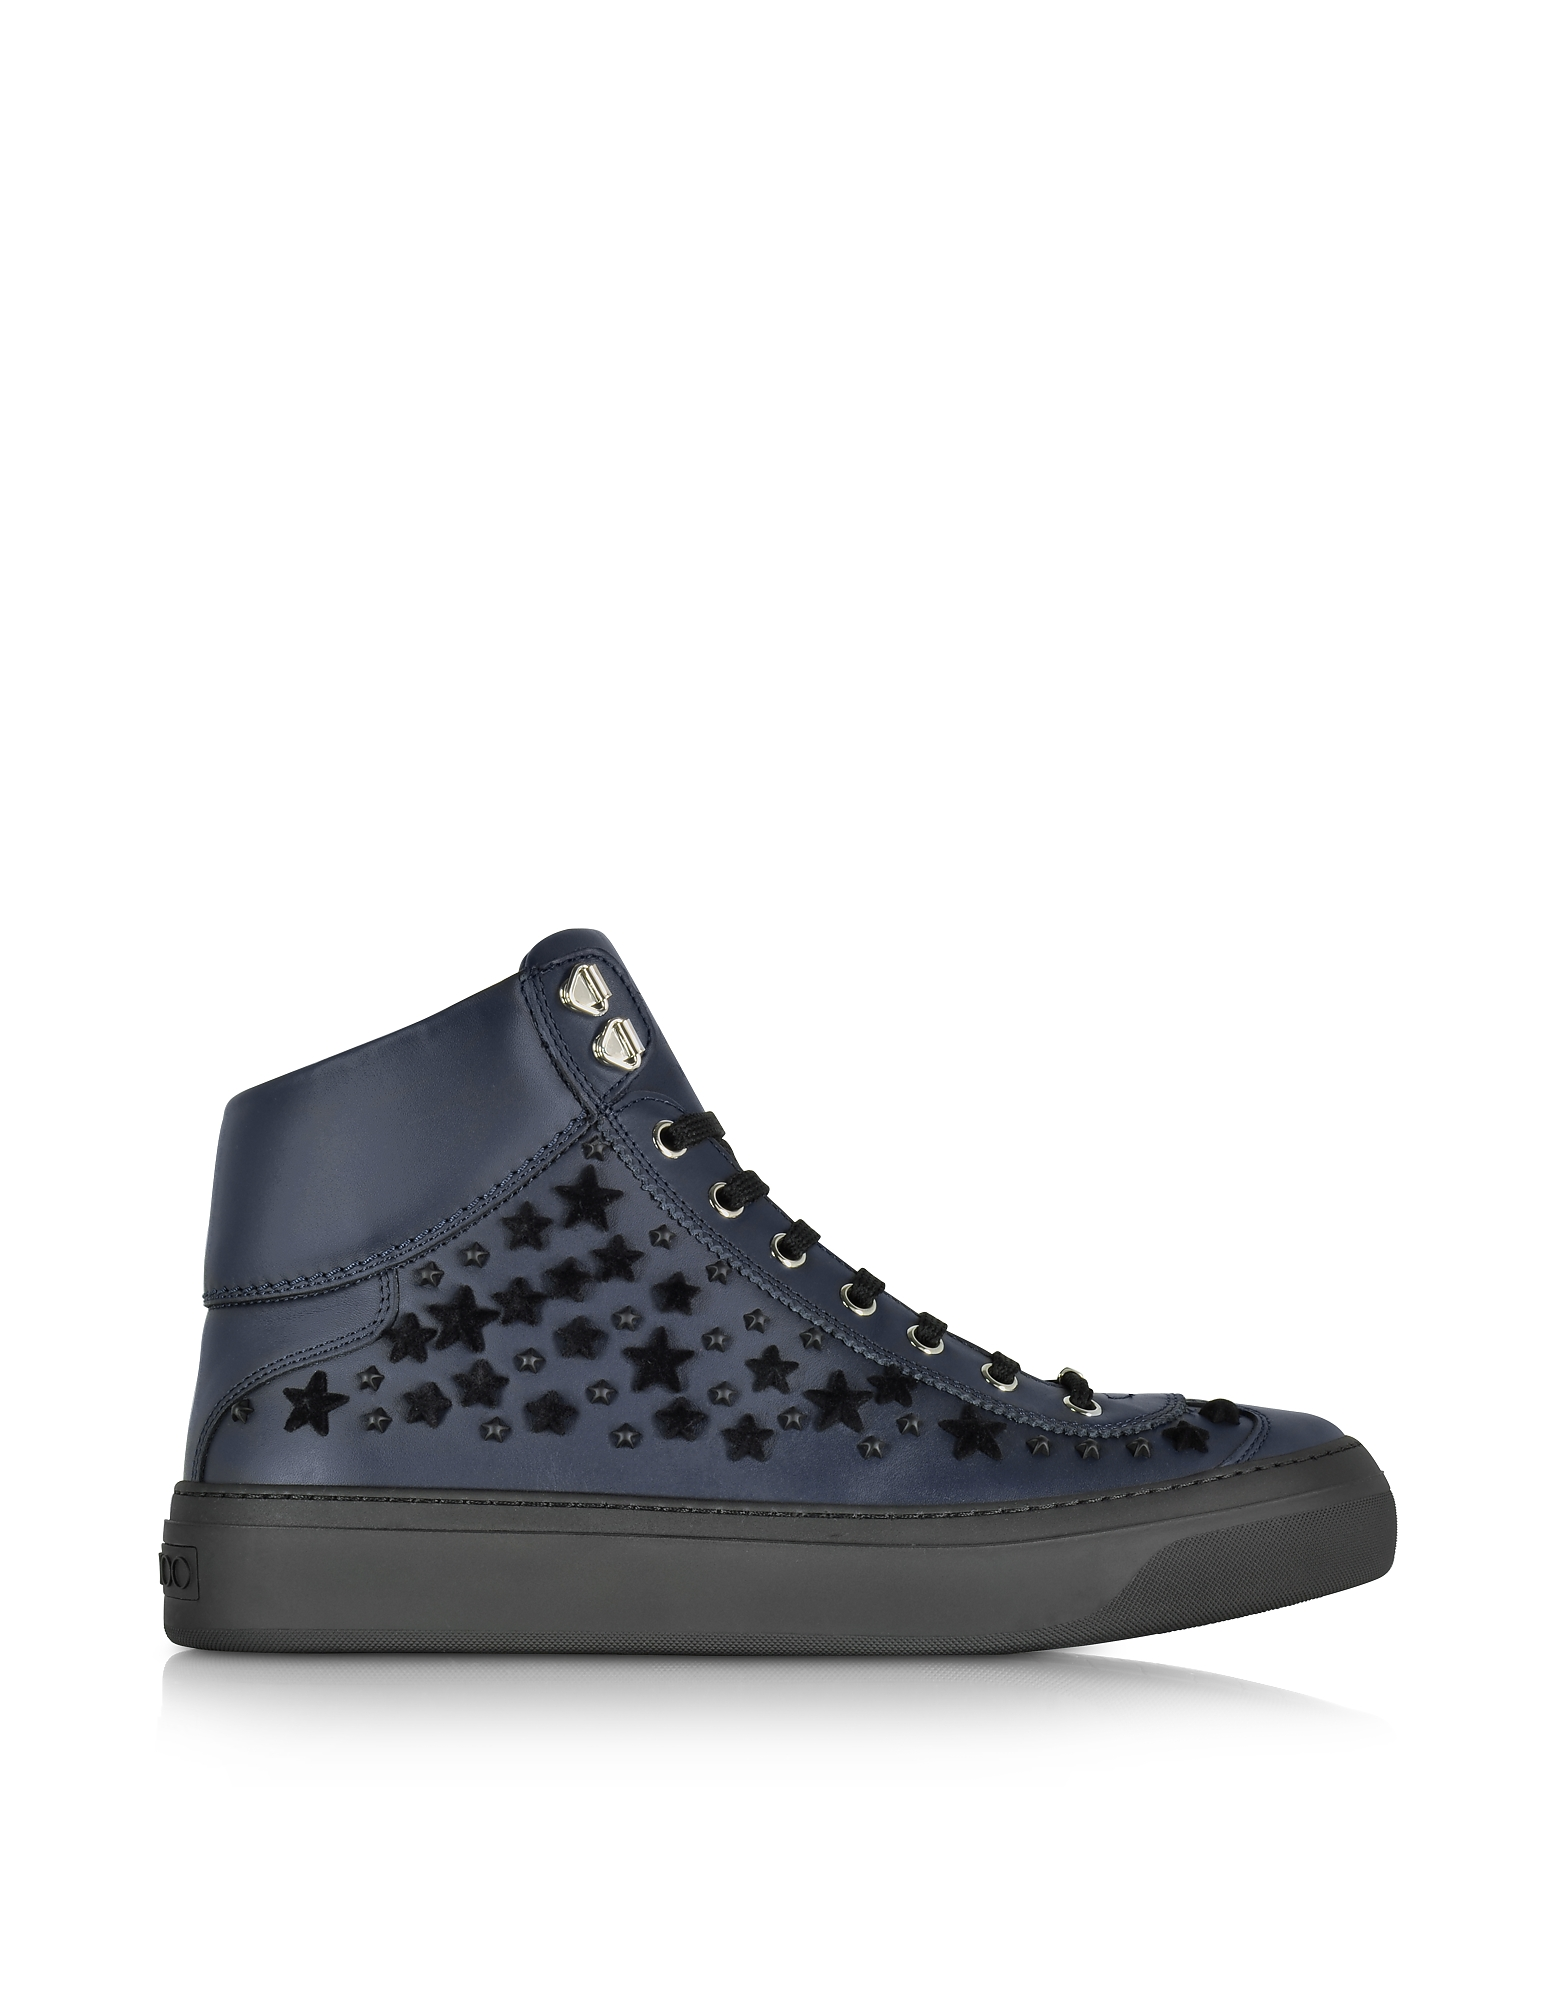 Jimmy Choo Shoes, Argyle Official Navy Leather High Top Sneakers w/Black Flocked Stars